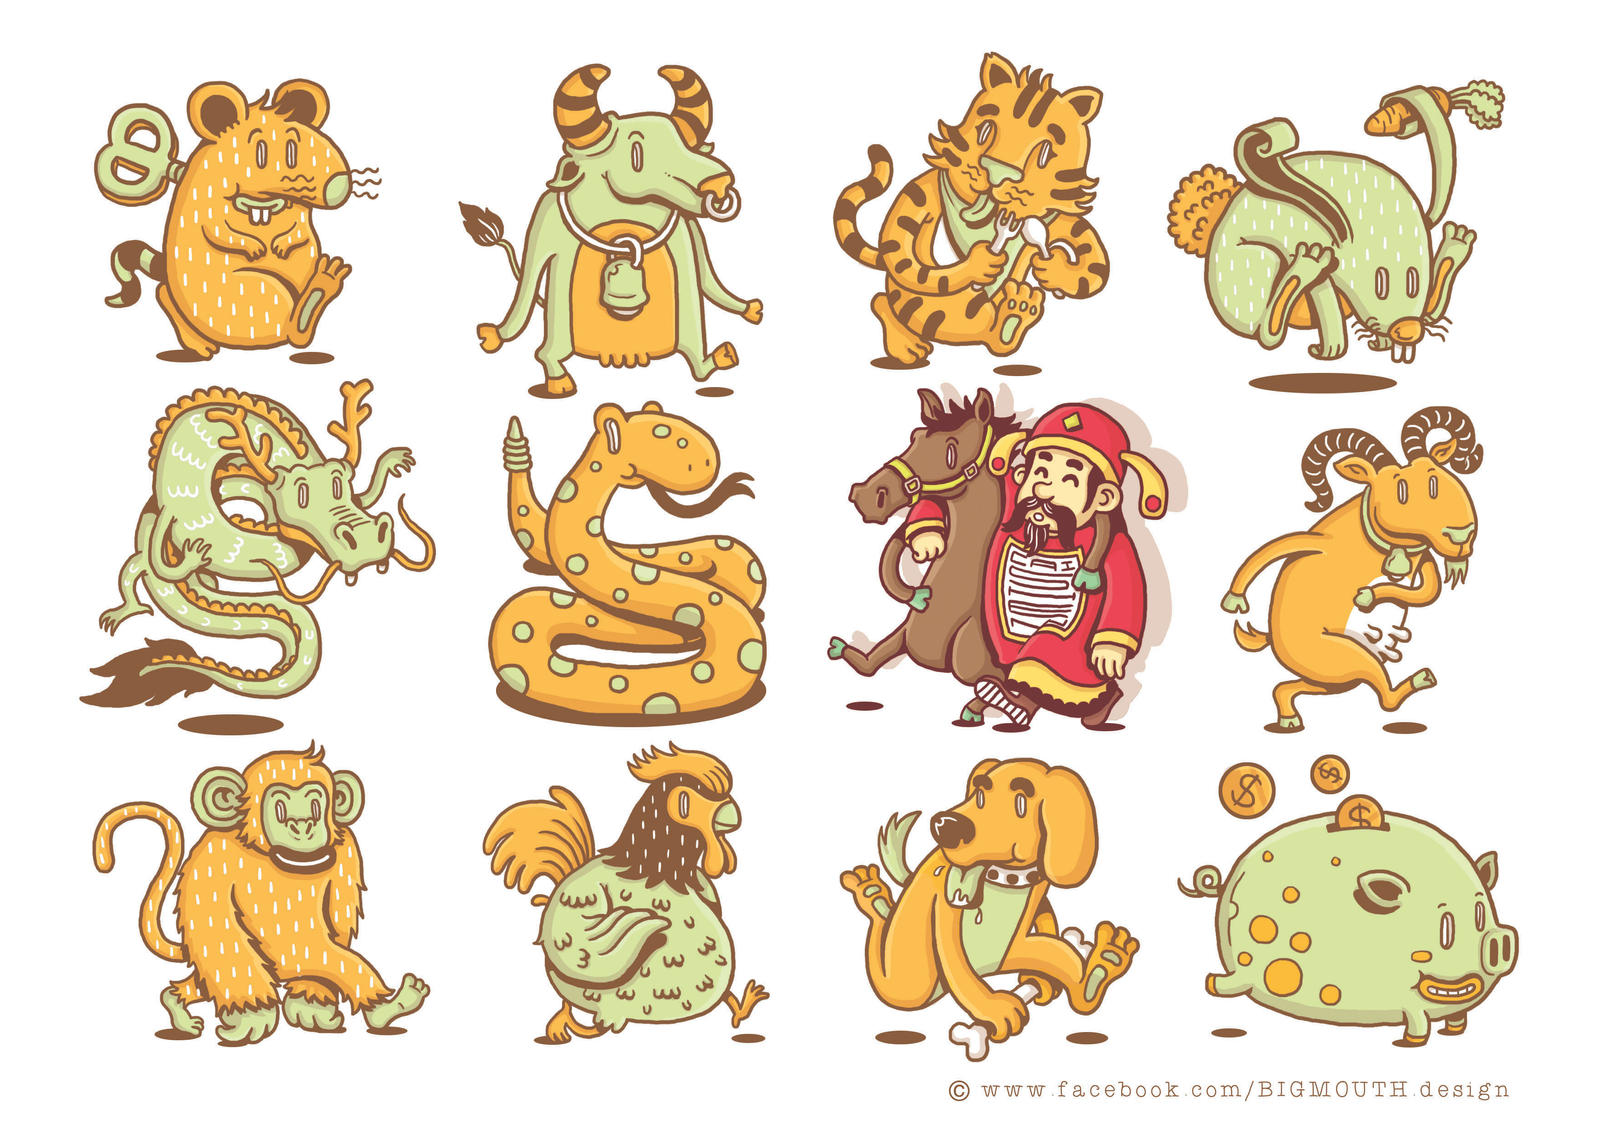 happy chinese new year 2014 by bigmouth design - Chinese New Year 2014